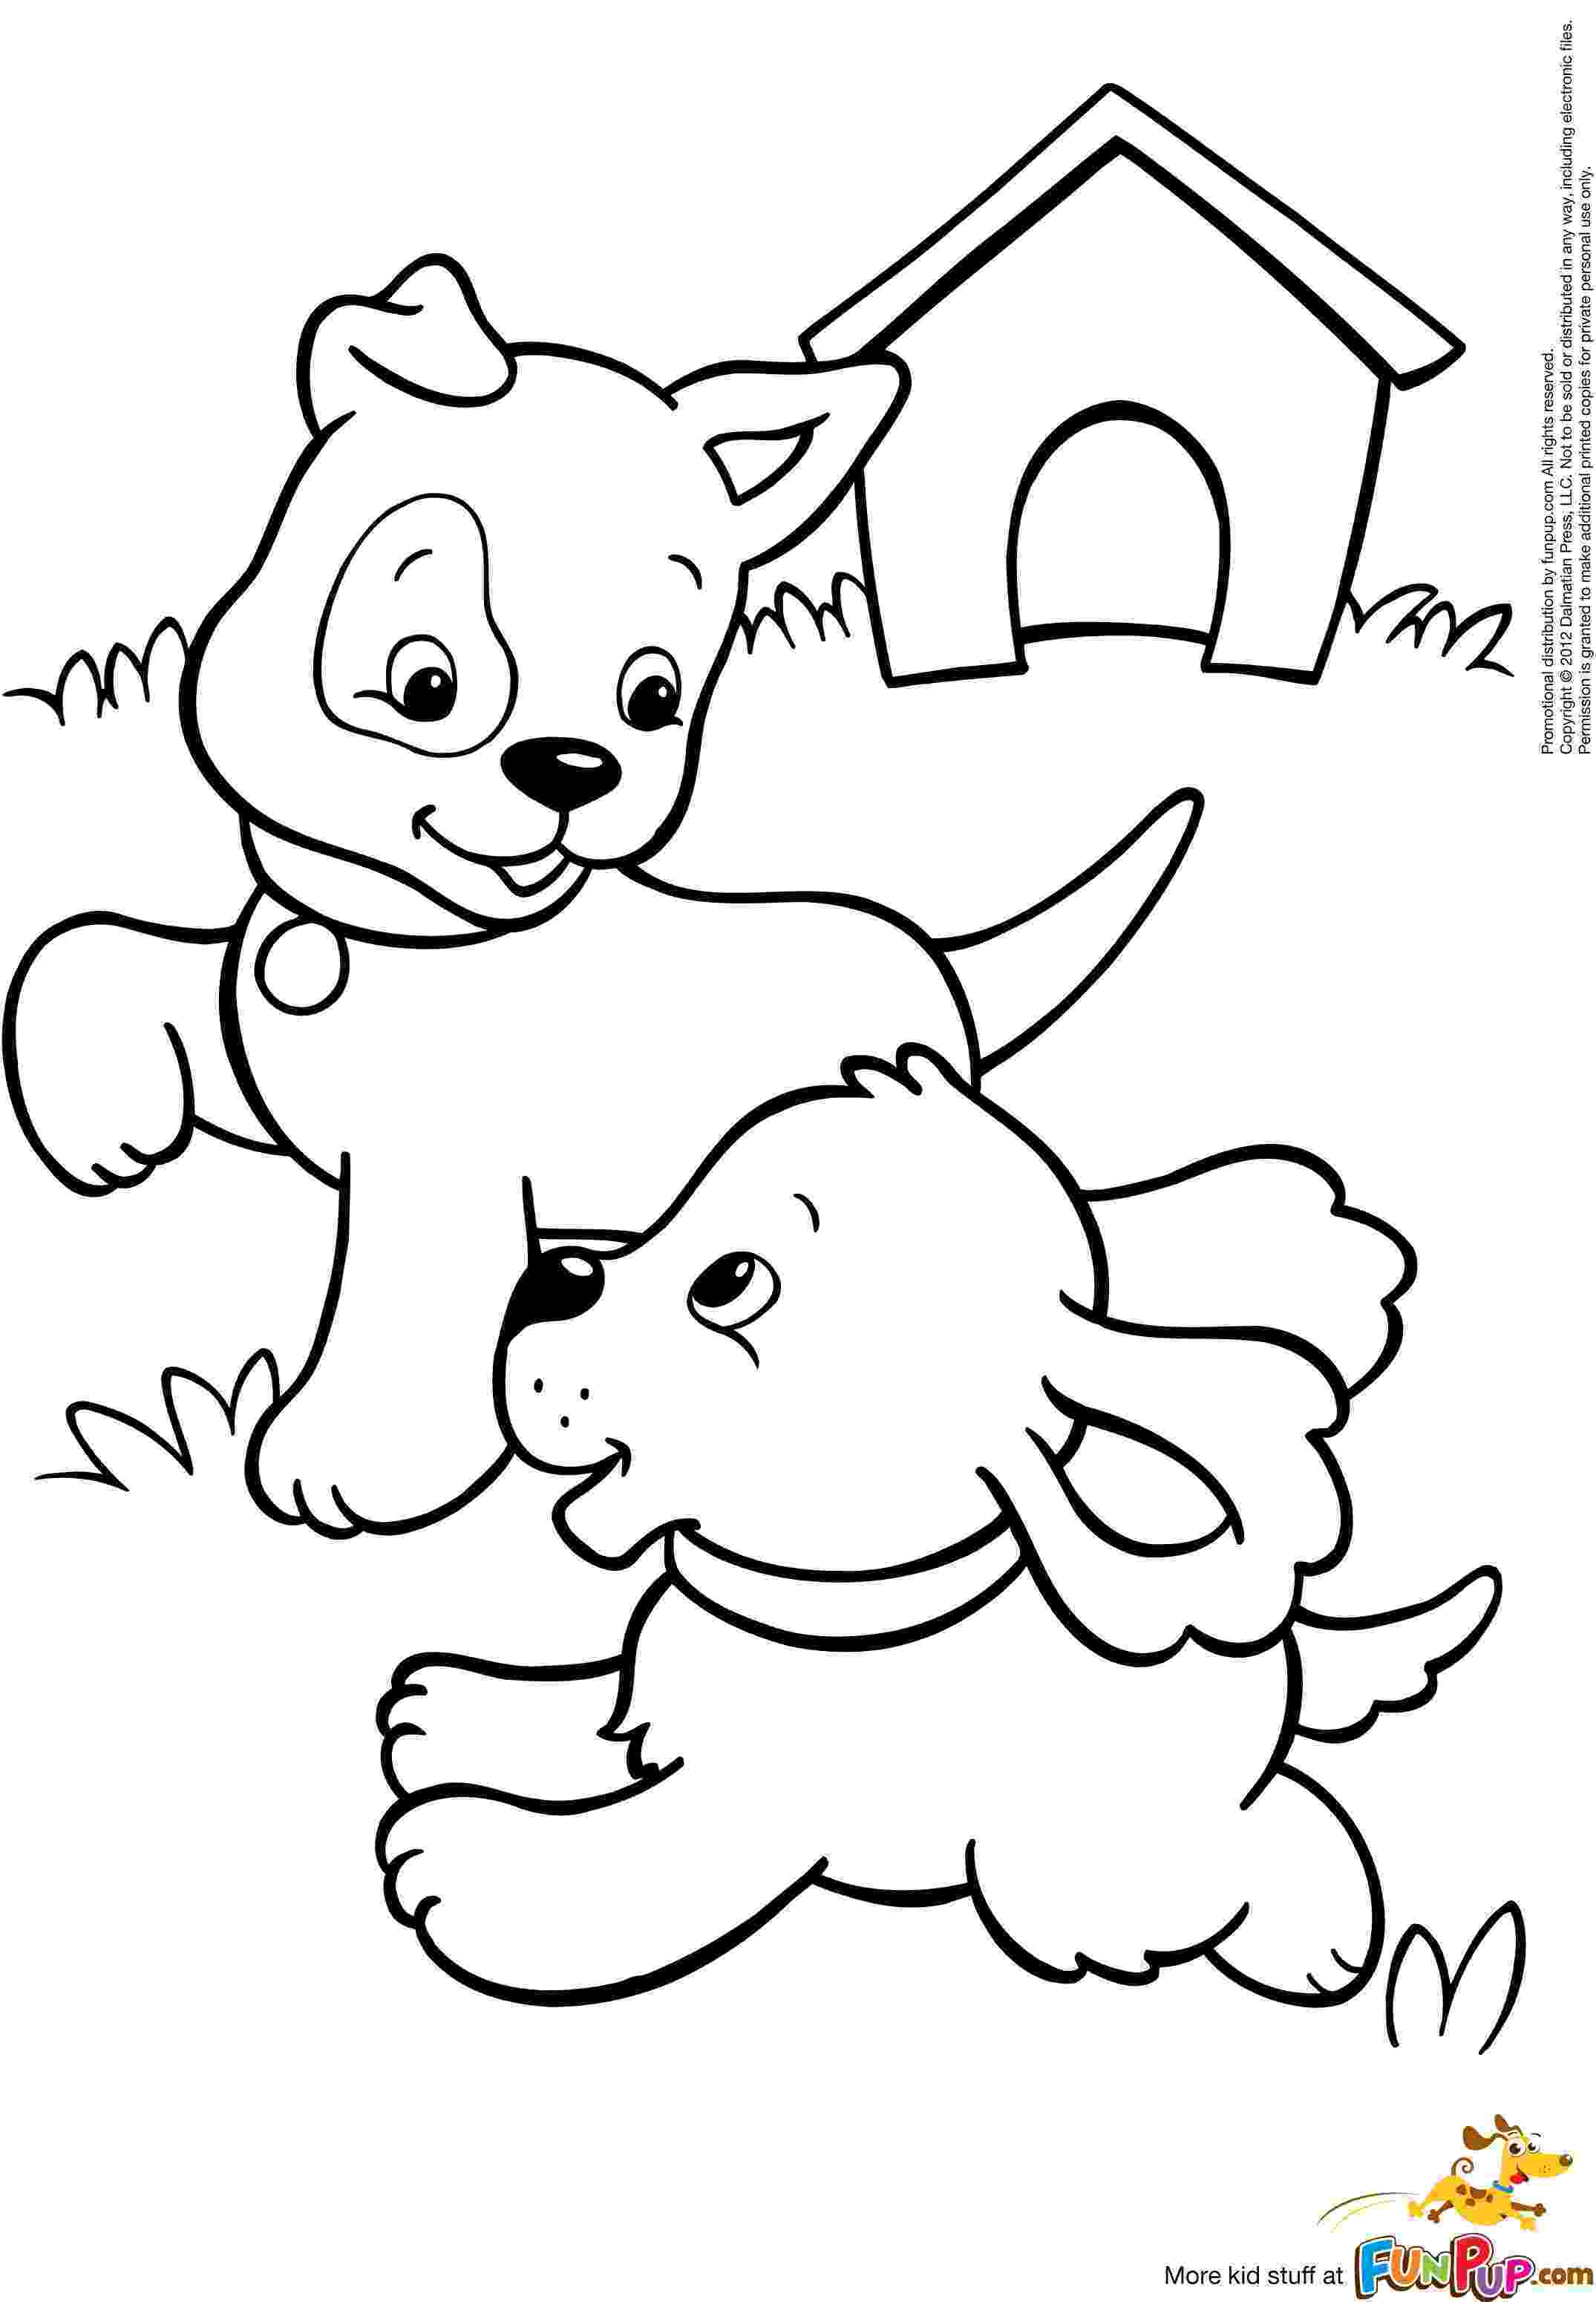 cute dog pictures to colour cute puppy coloring pages for kids free printable cute dog pictures to colour